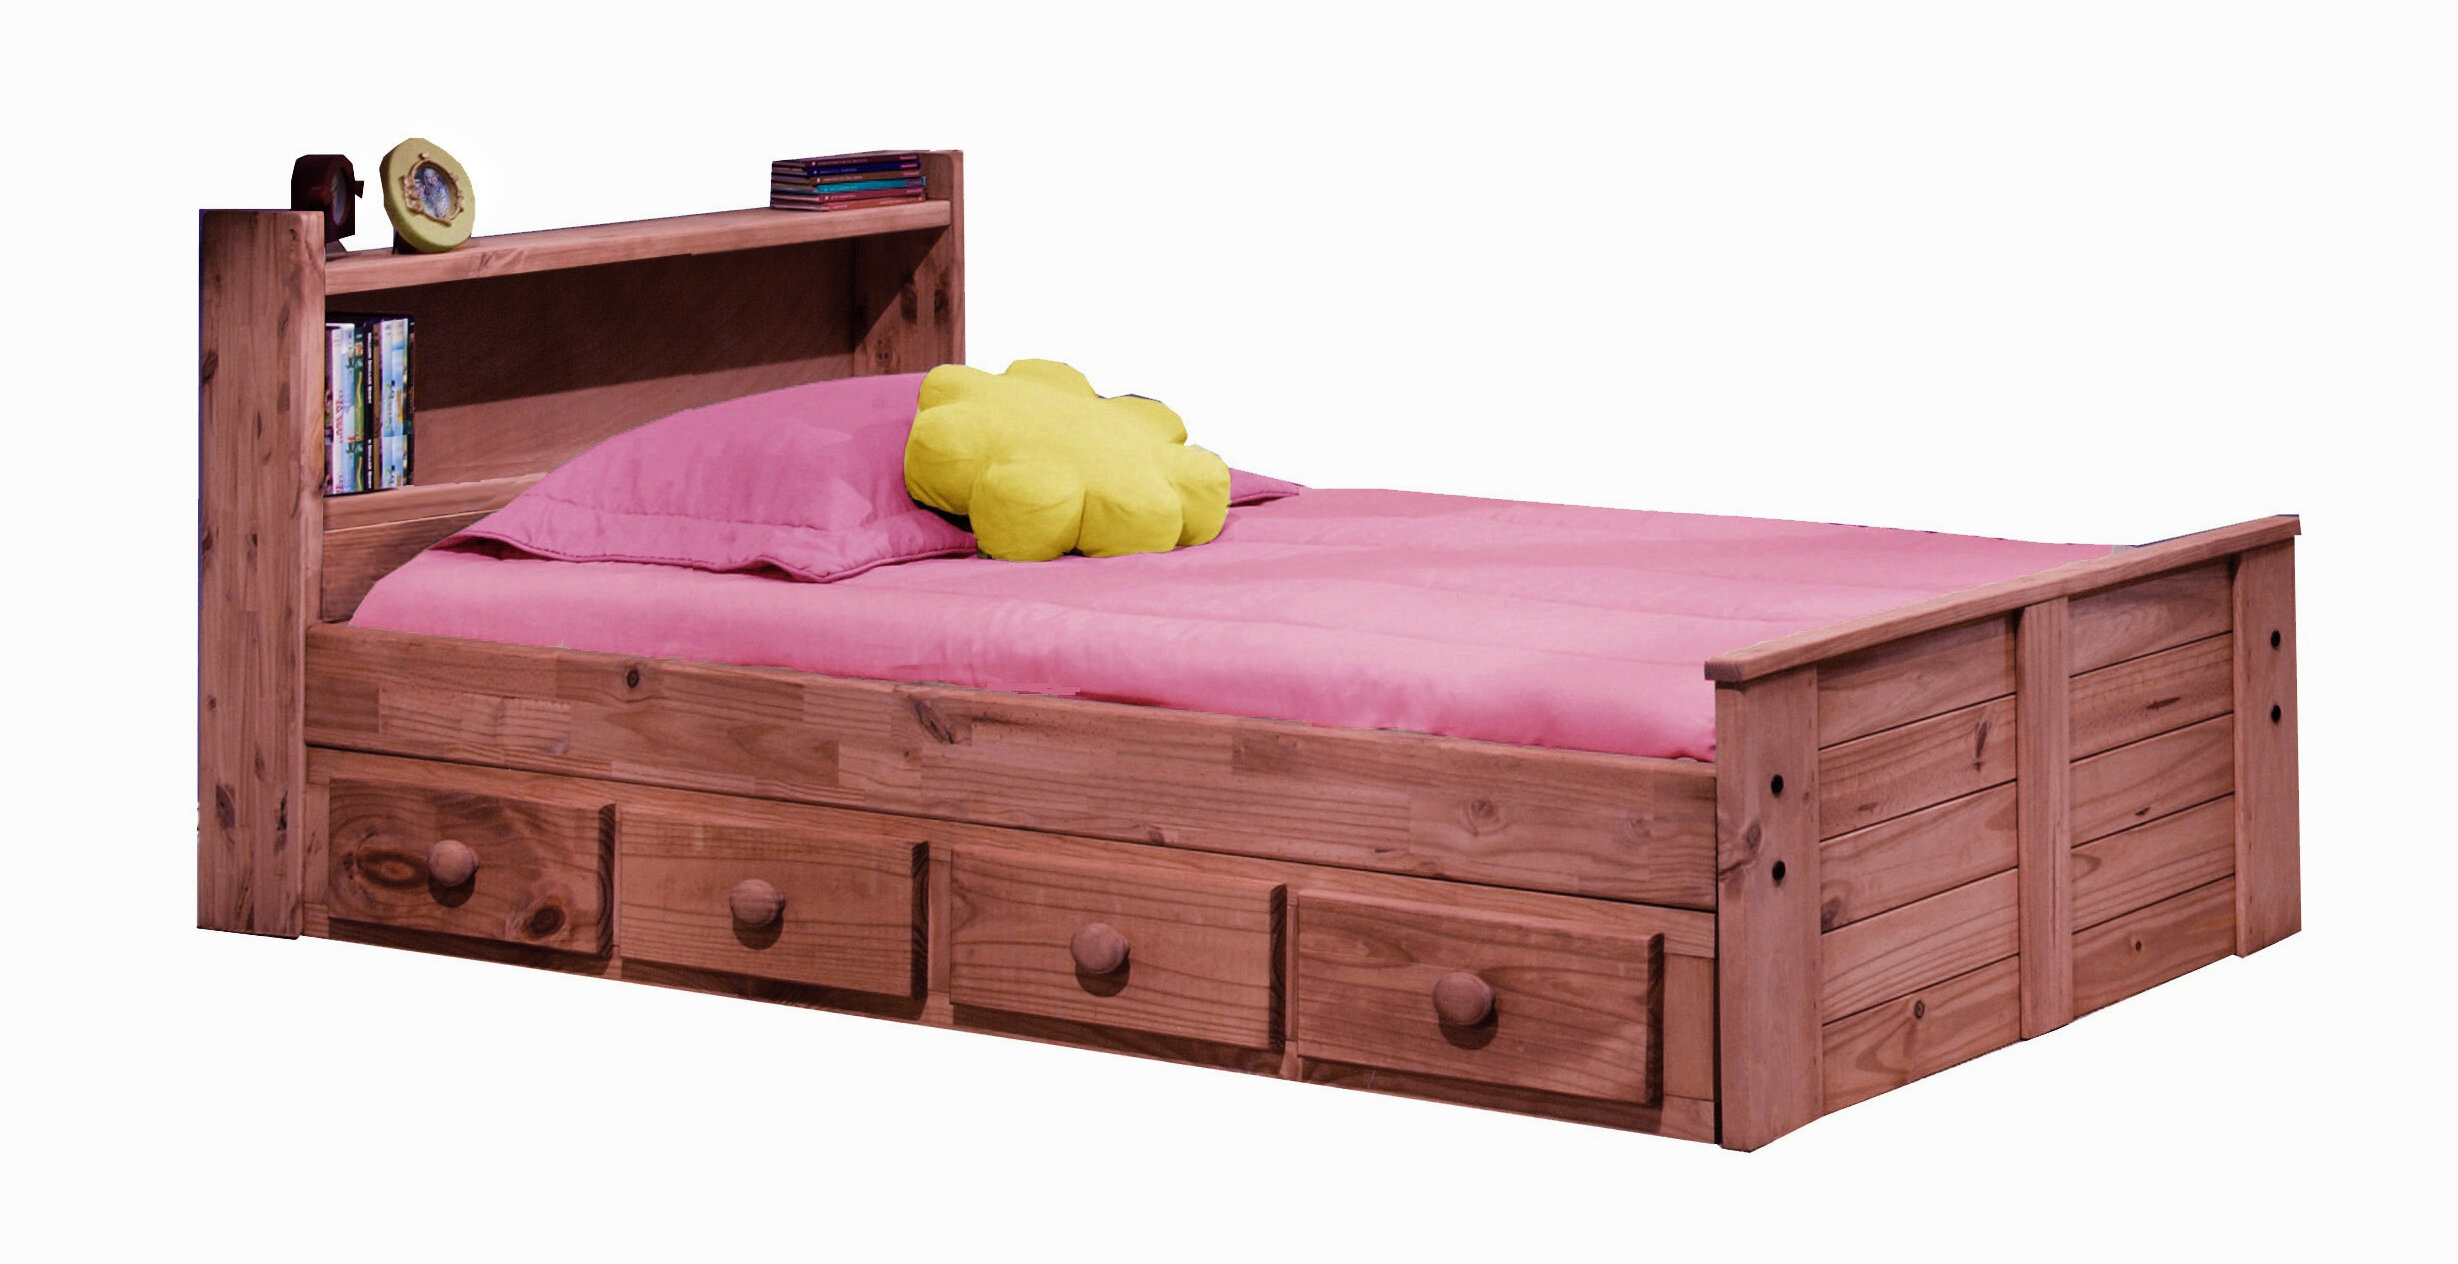 Chiu Twin Mate S Captain Bed With Bookcase Headboard And Storage